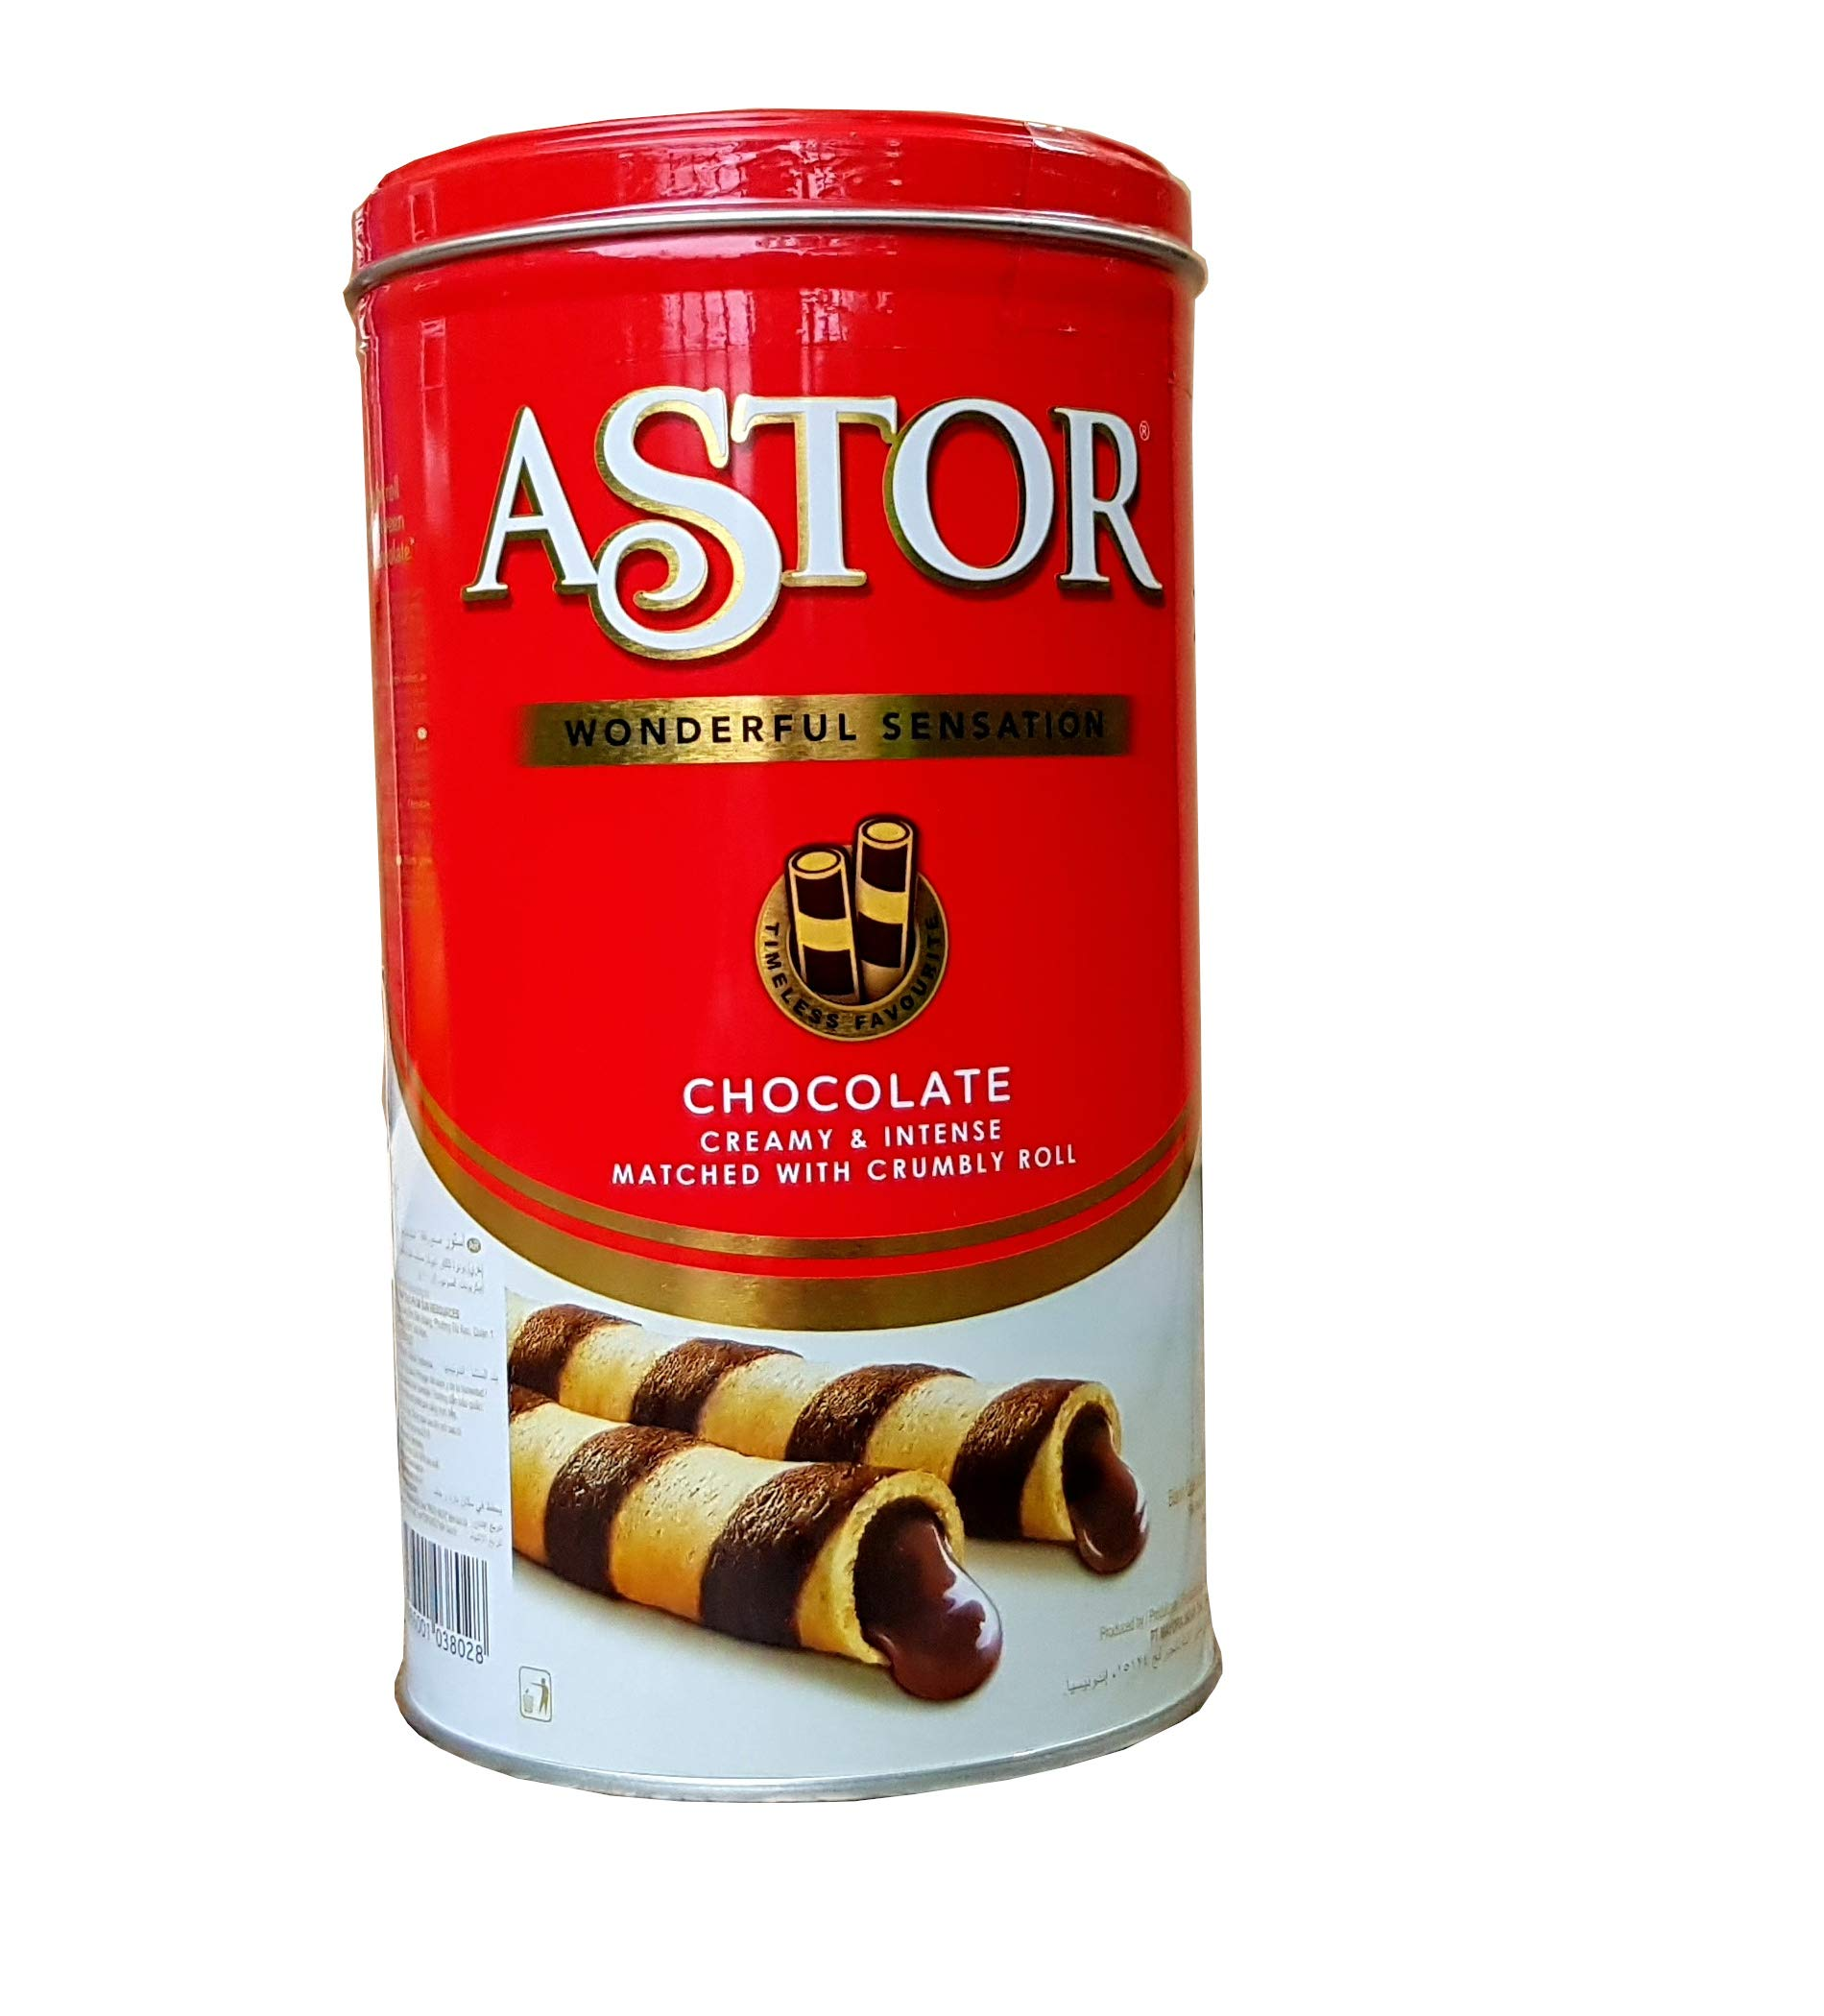 Astor Wafer Roll Filled with Chocolate